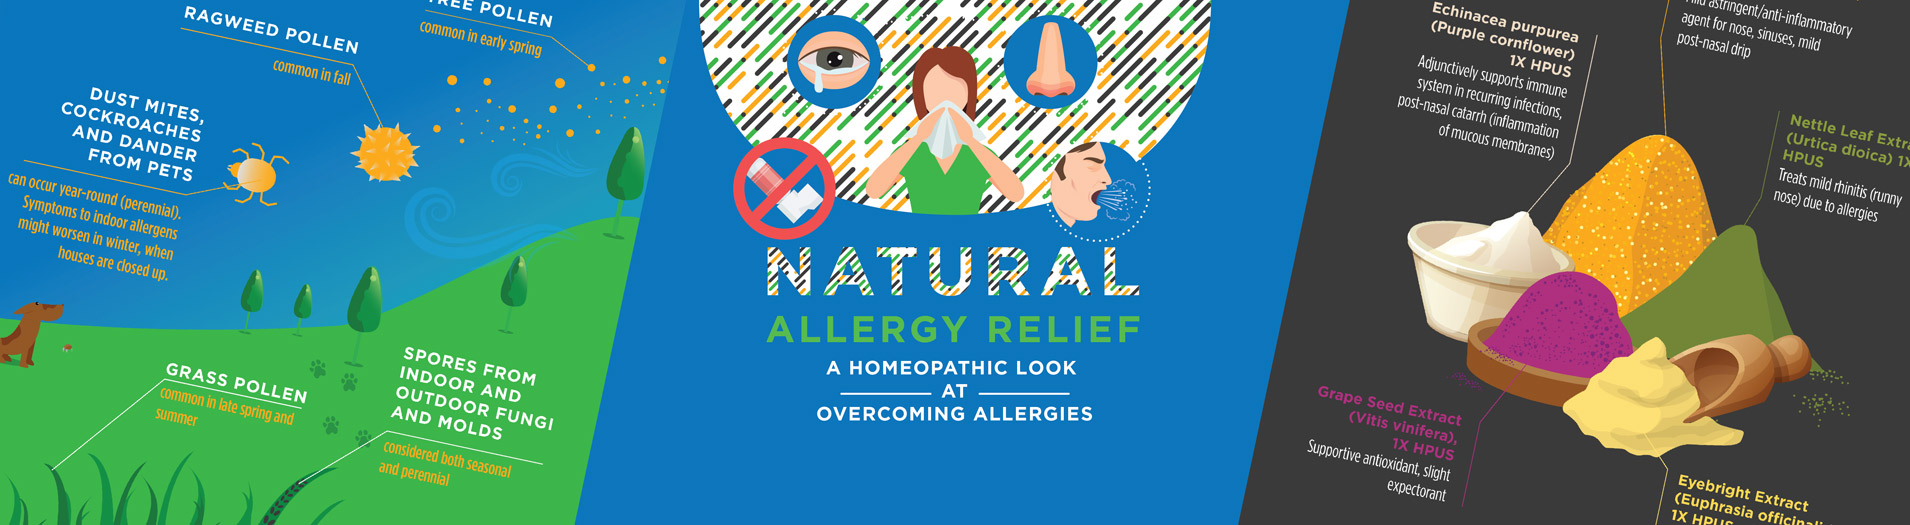 All Natural Allergy Relief with Phytofed